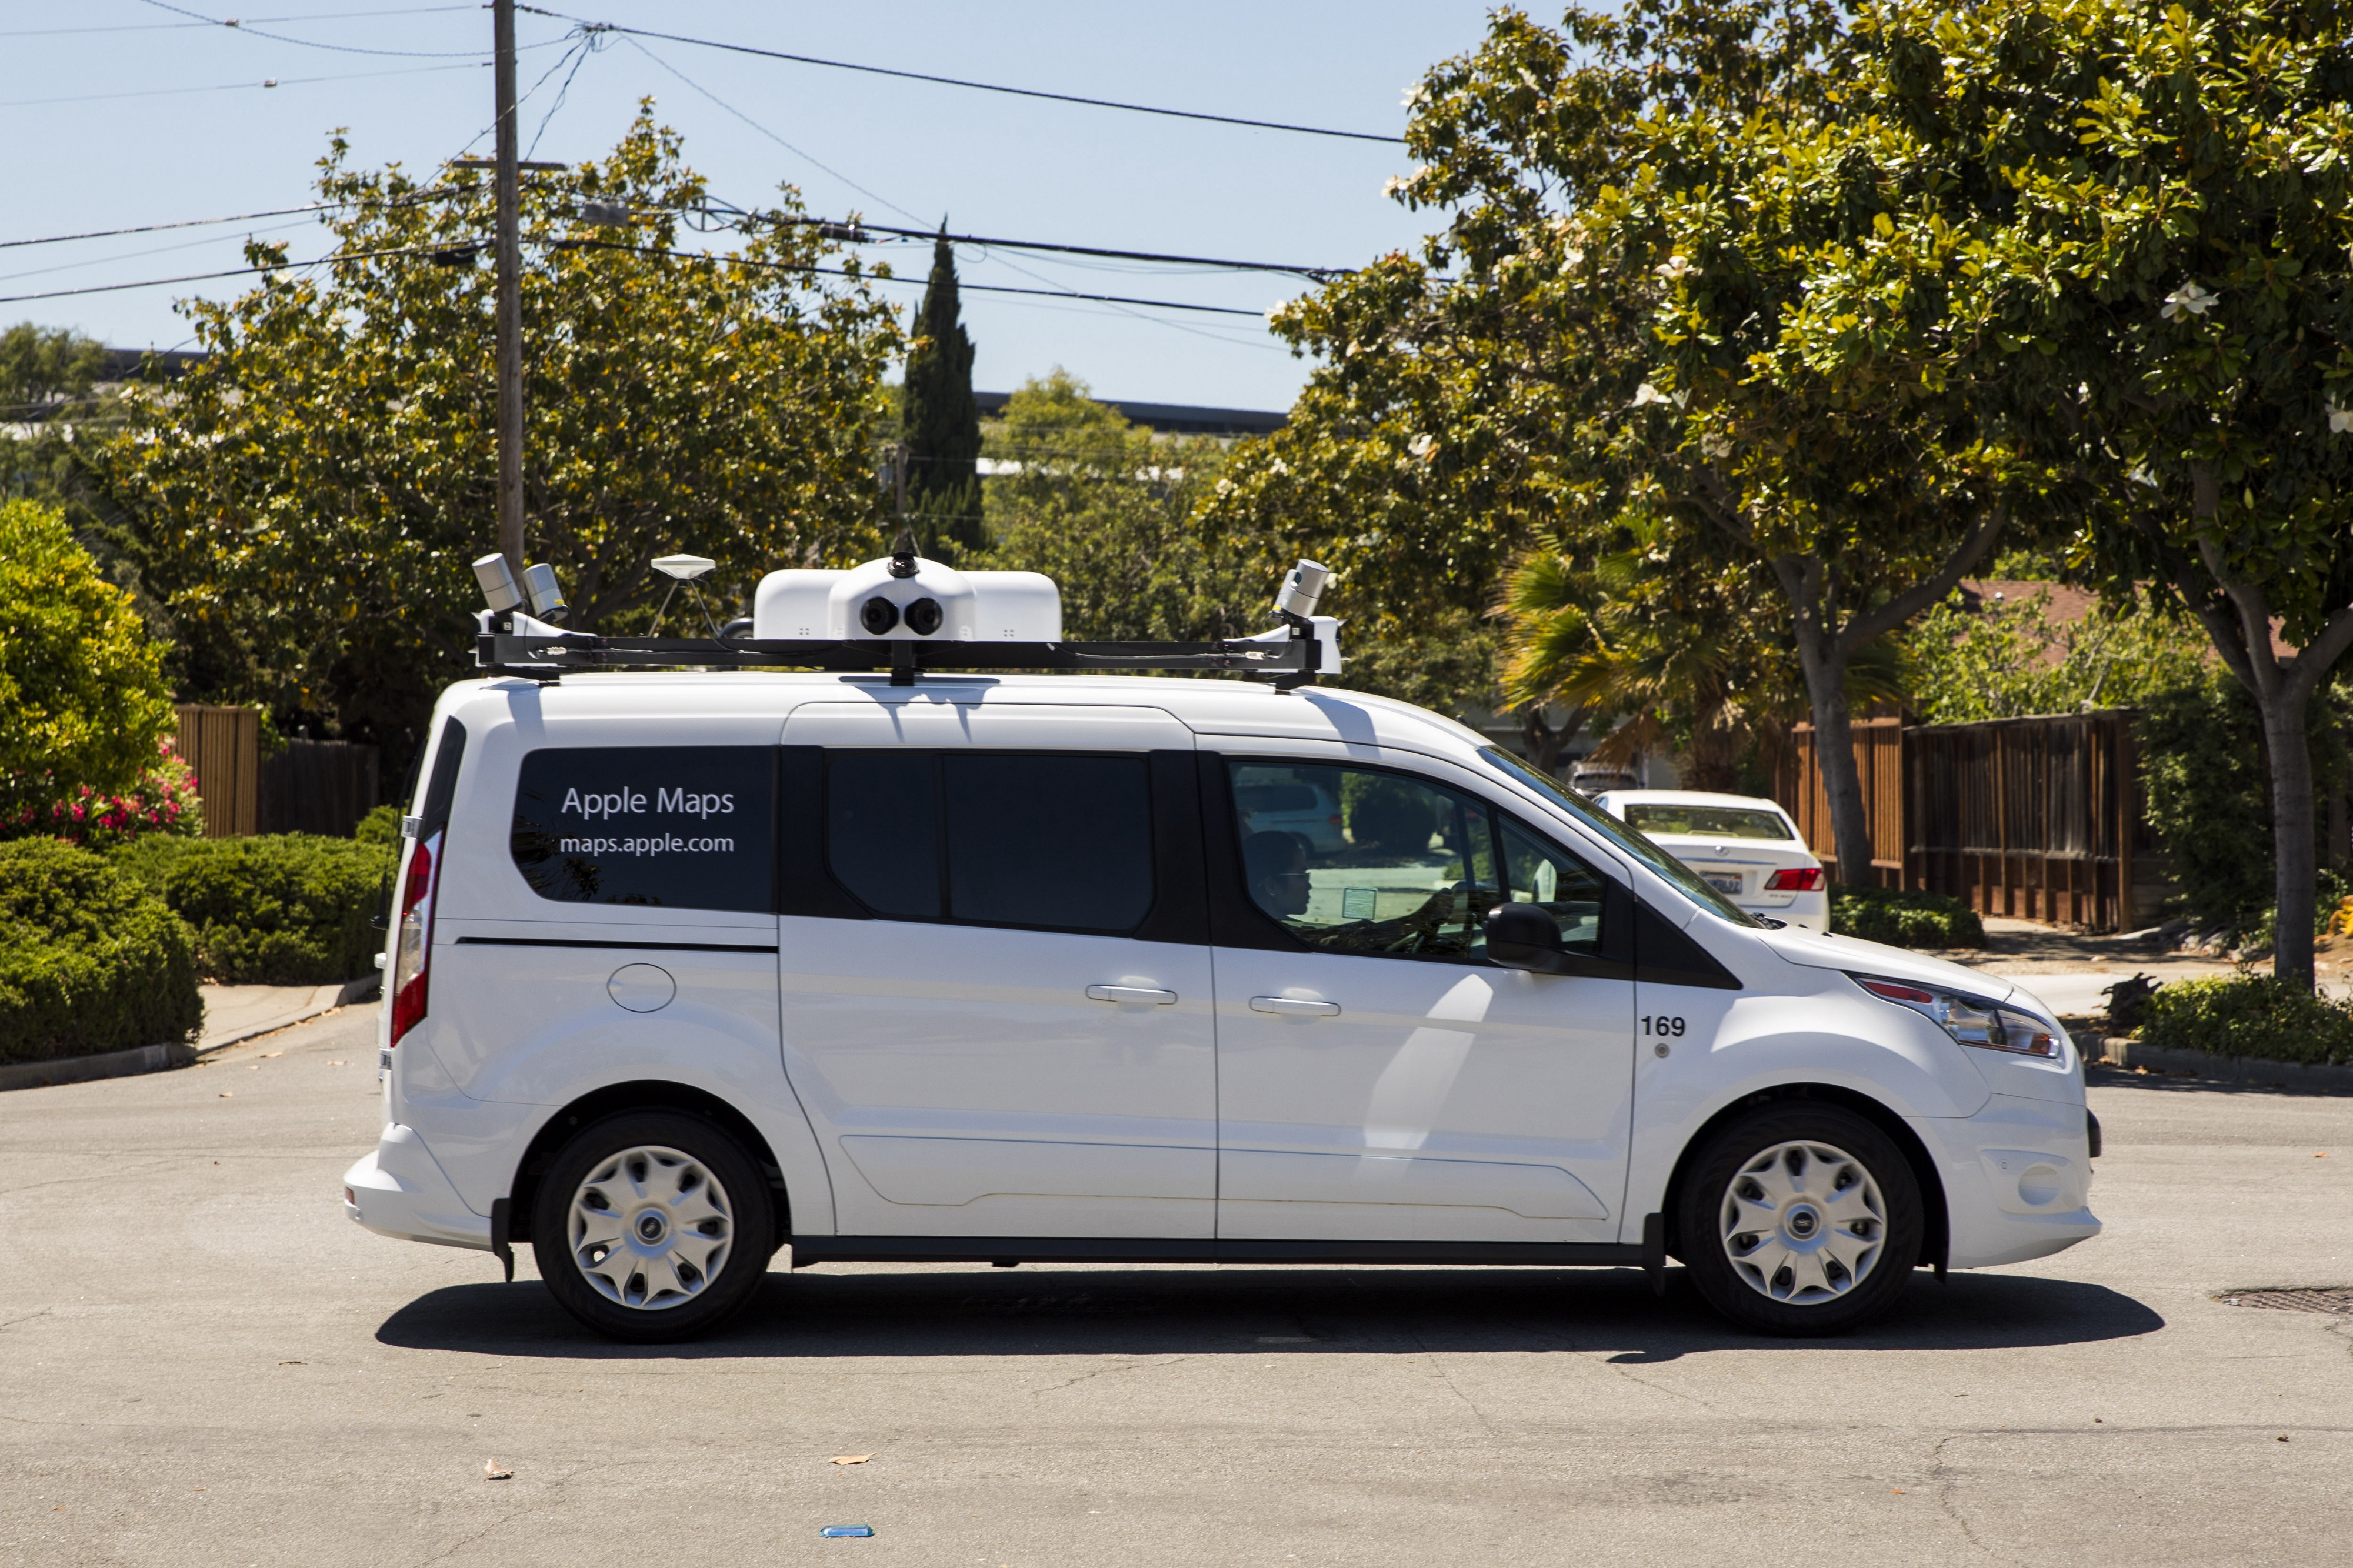 Picture of Apple Maps van with rig of LiDAR and cameras.